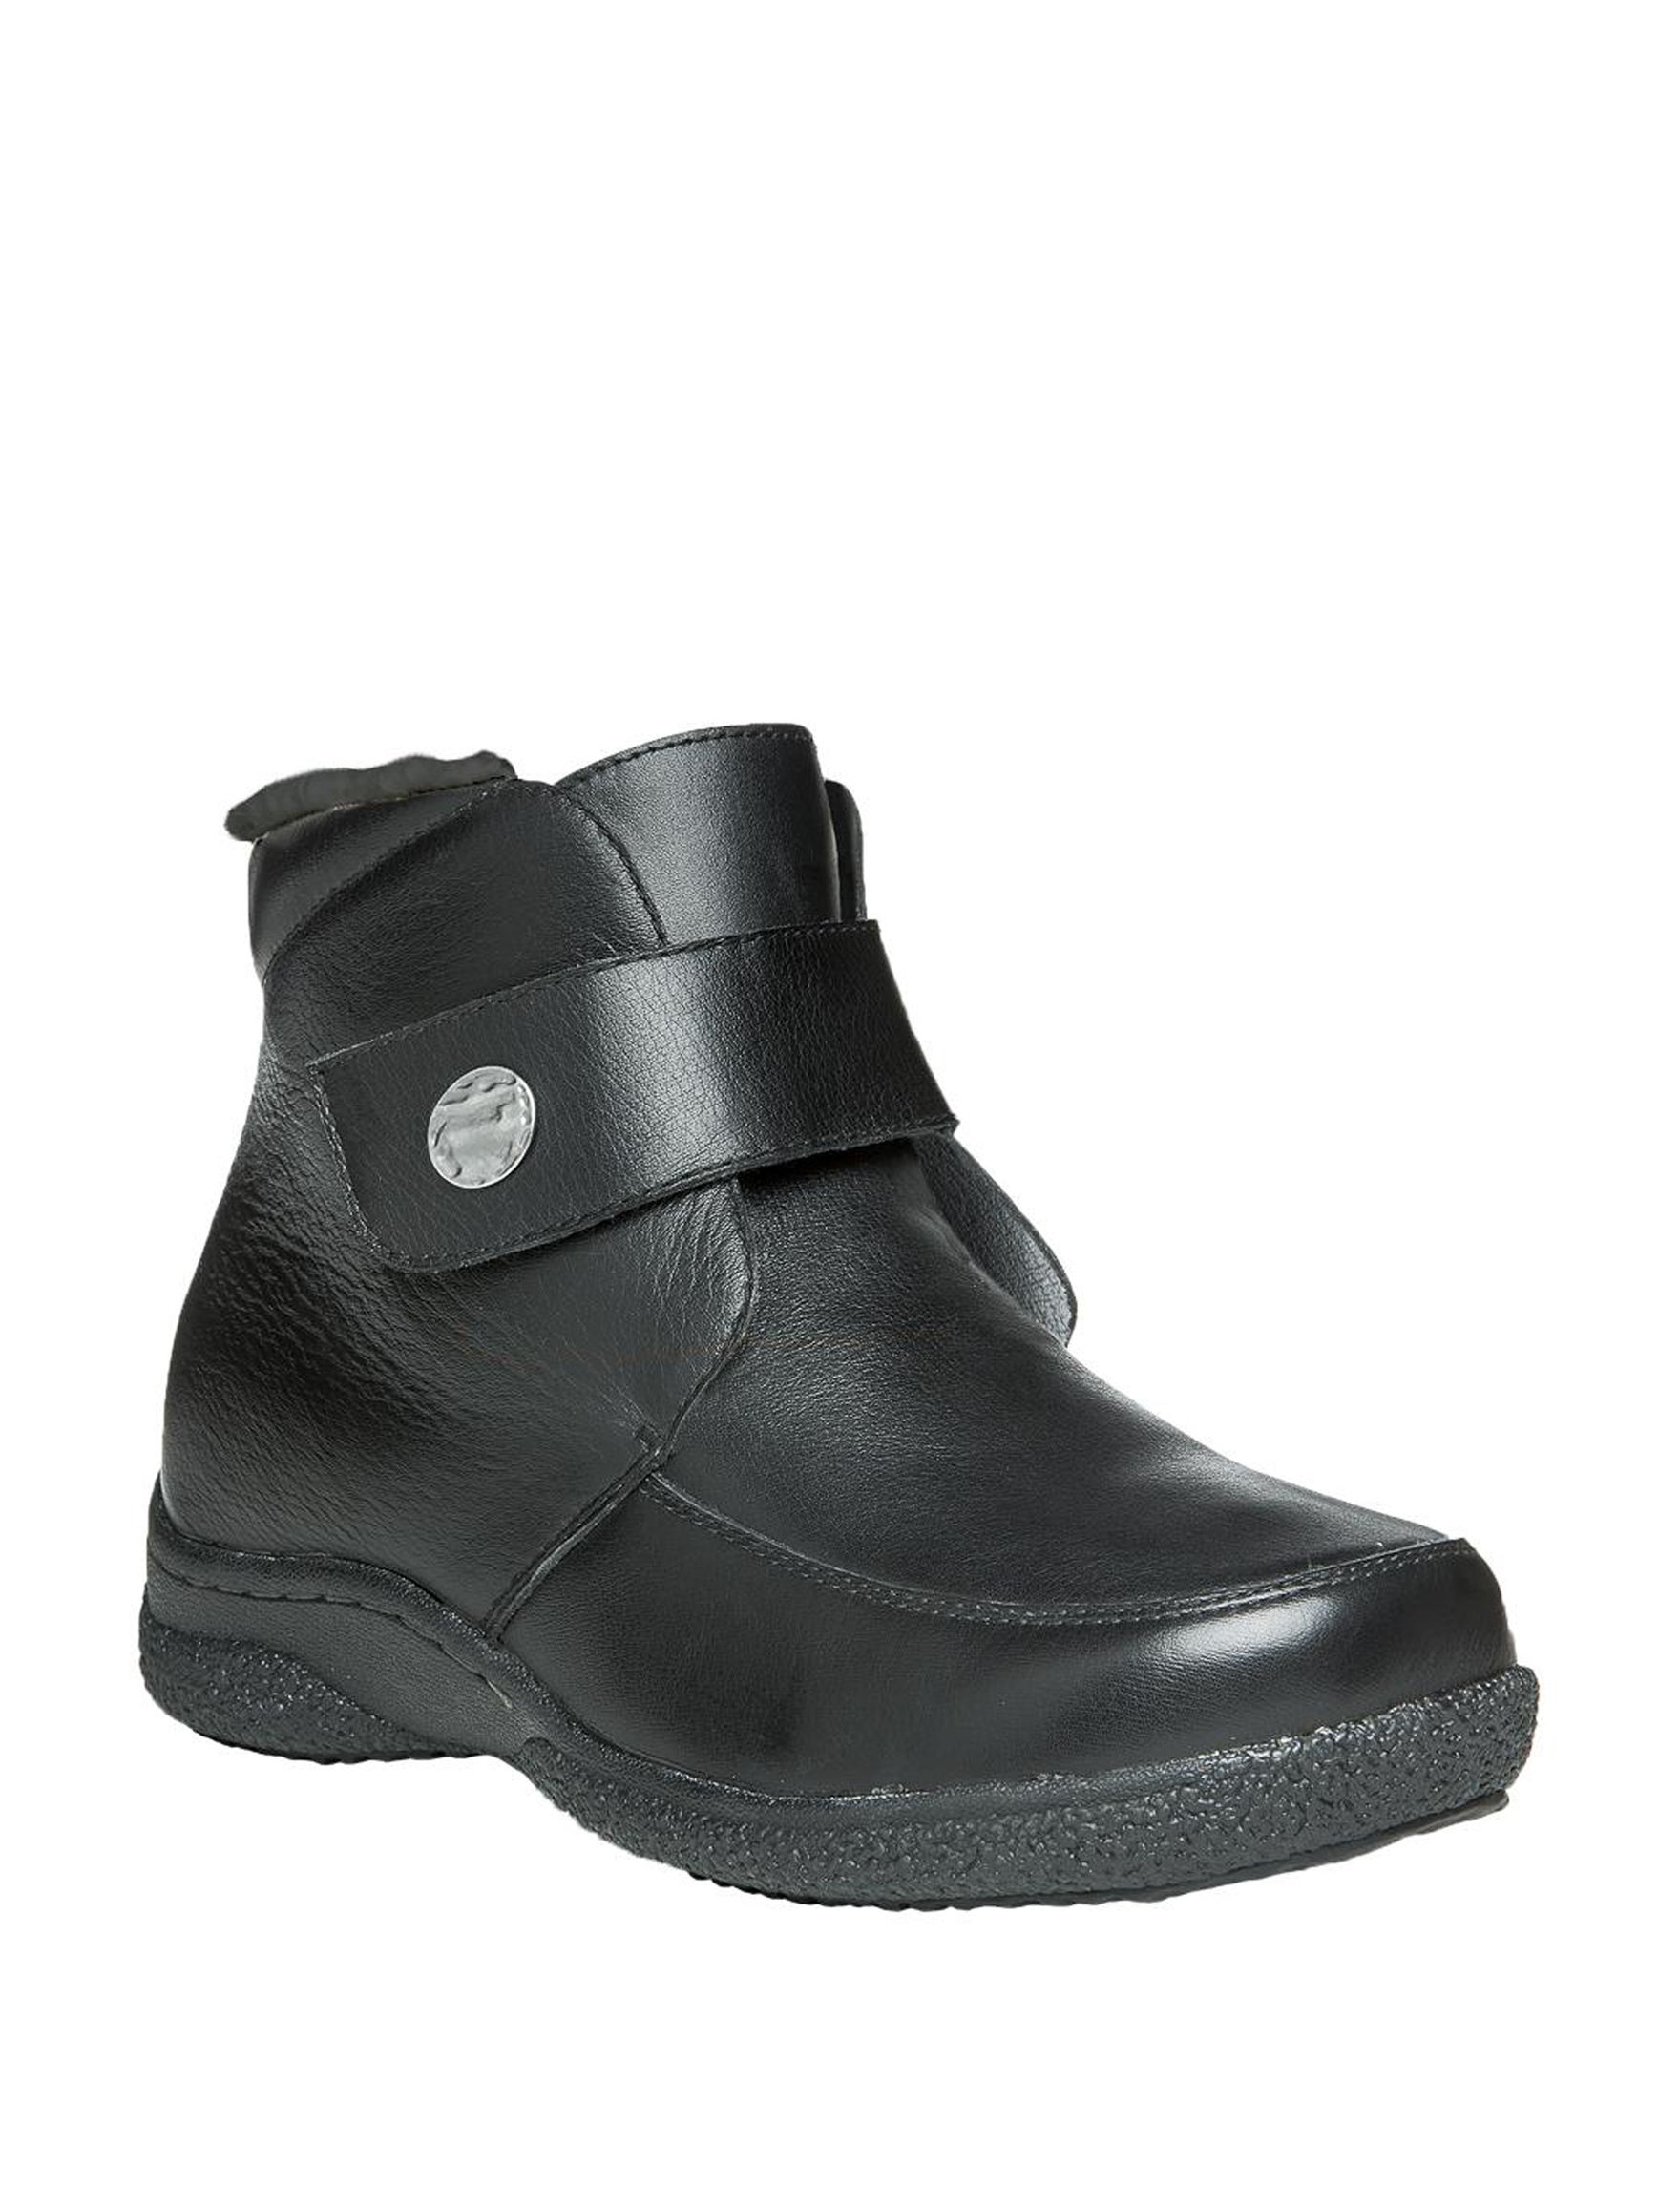 Propet Black Ankle Boots & Booties